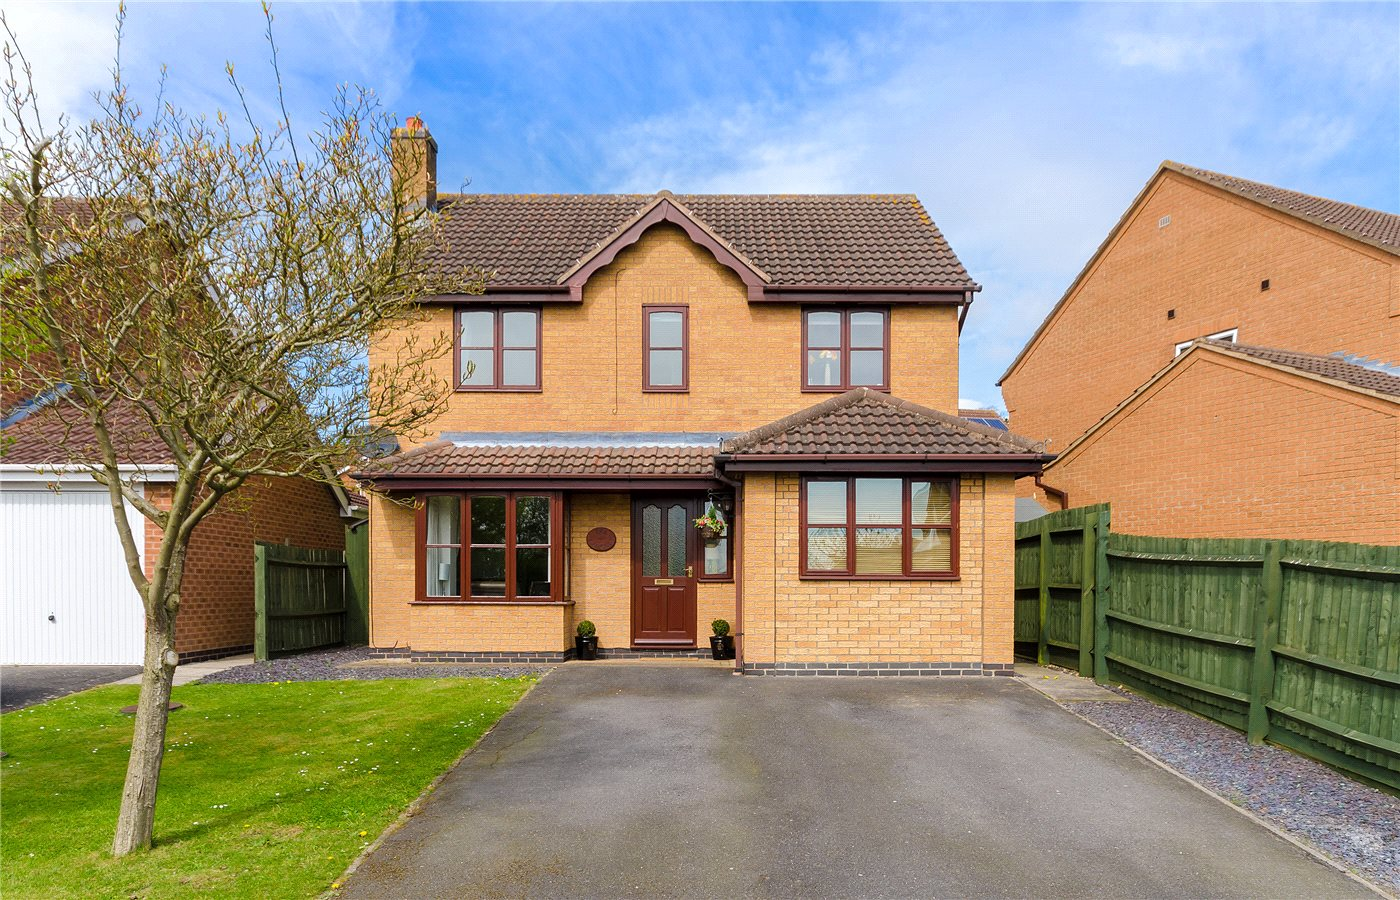 5 Bedrooms Detached House for sale in Malvern Drive, Gonerby Hill Foot, Grantham, NG31